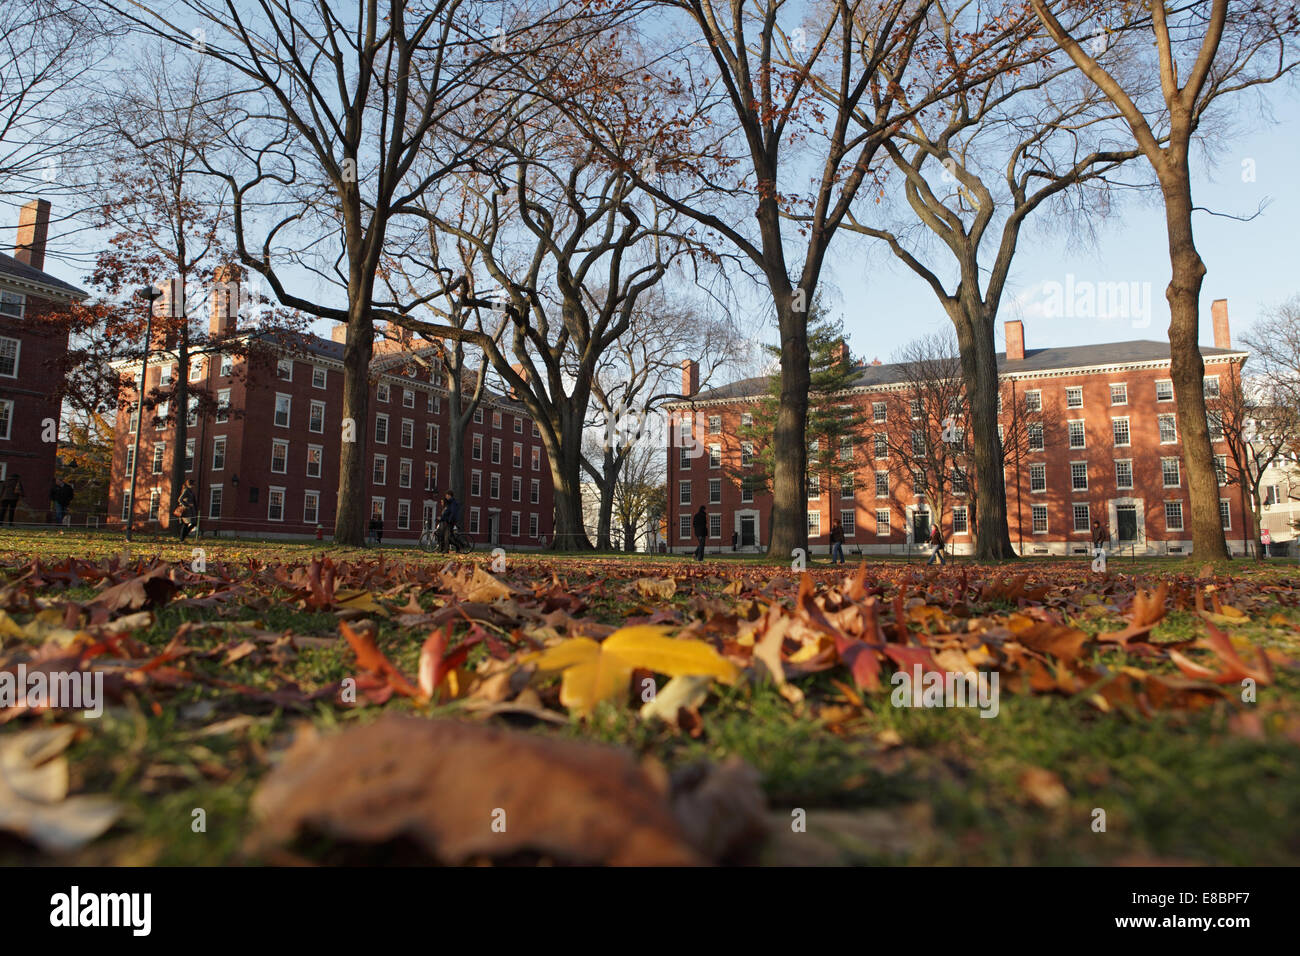 View of Harvard University campus - Stock Image